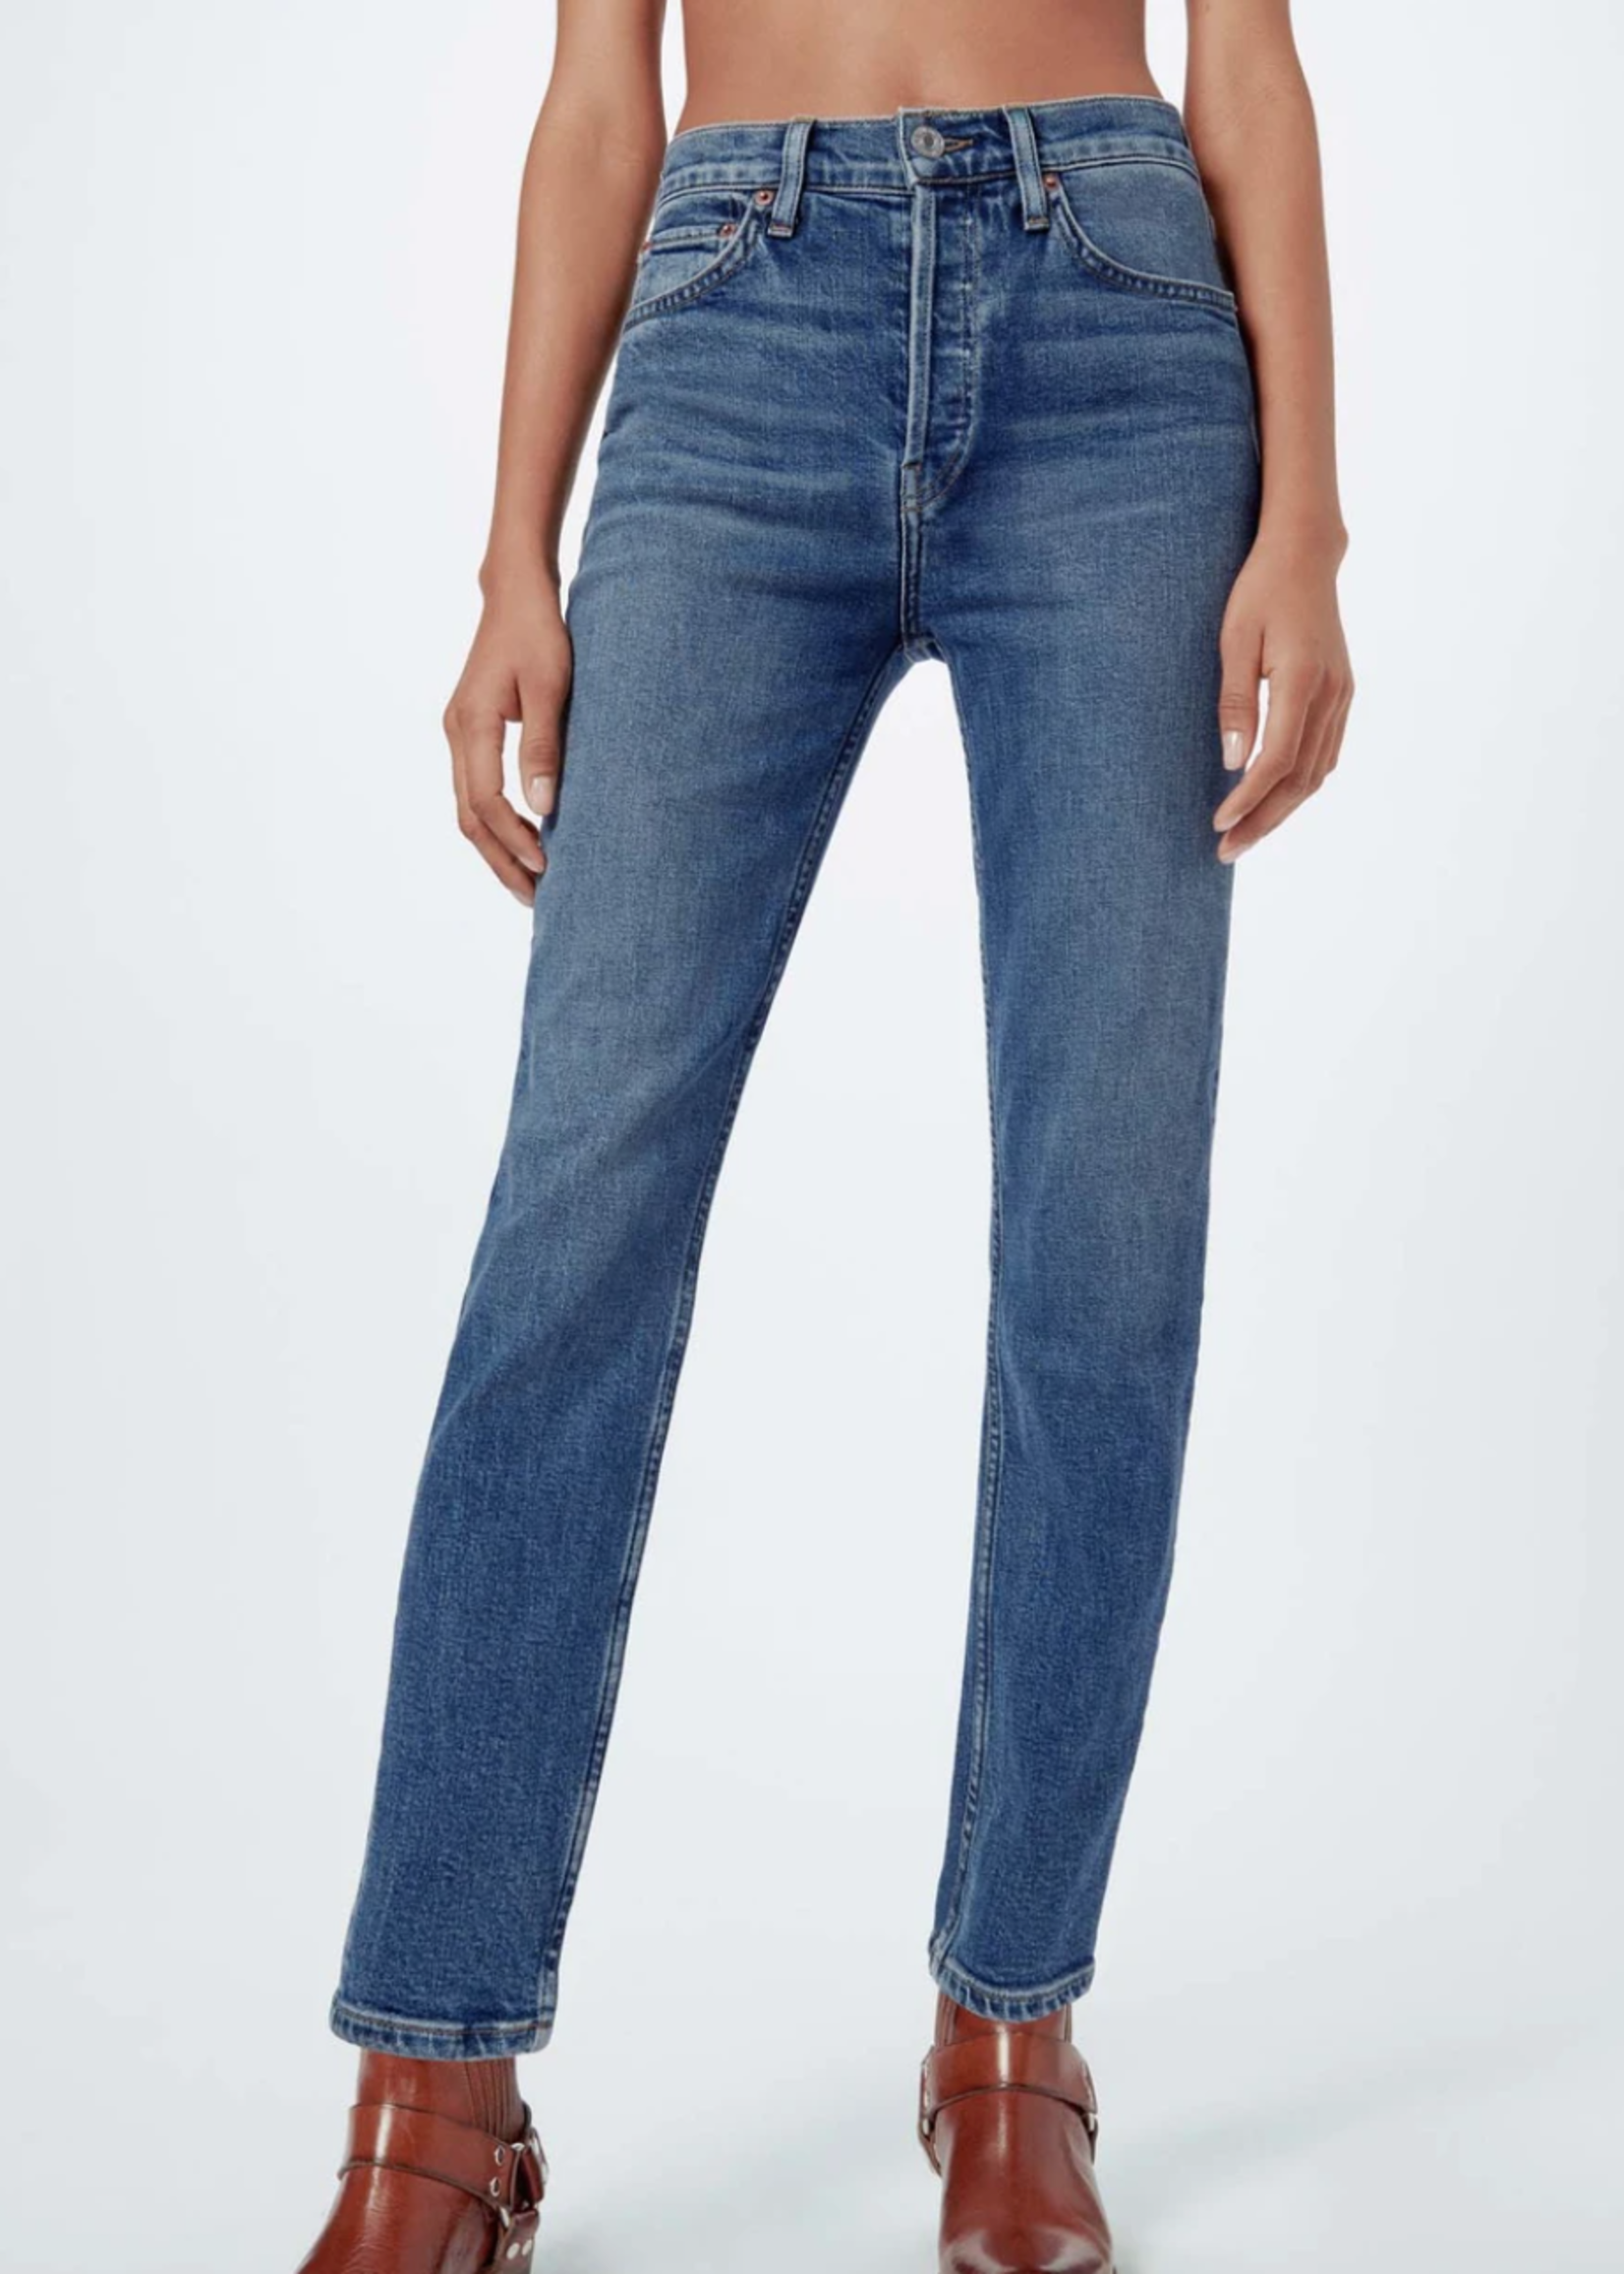 RE/DONE MID 70S 90'S HIGH RISE CROP JEAN 5/21